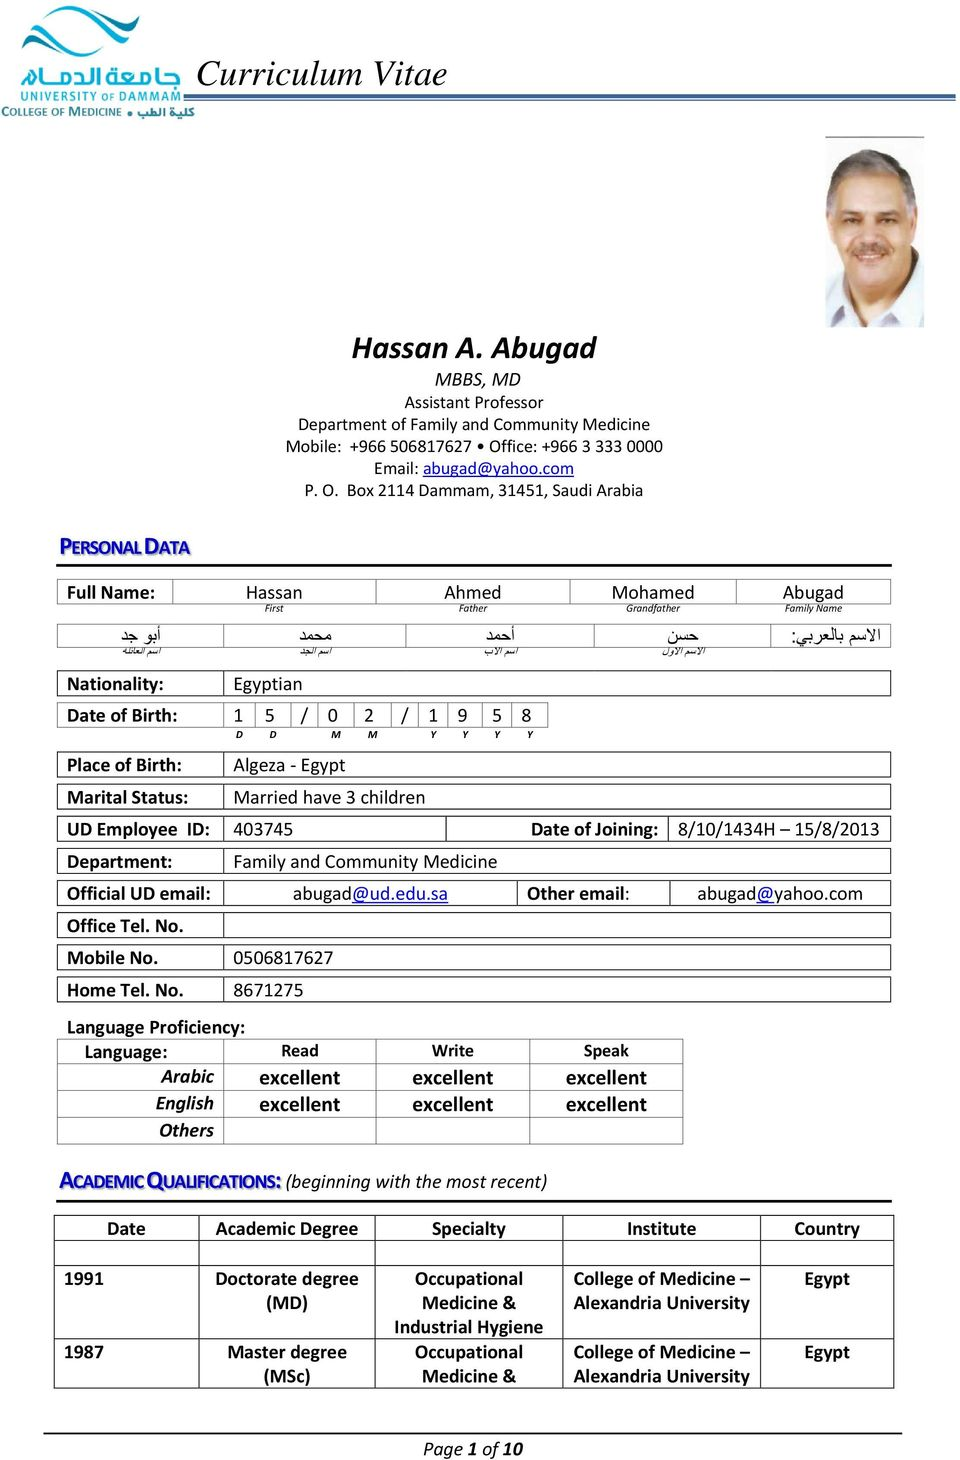 Box 2114 Dammam, 31451, Saudi Arabia PERSONAL DATA Full Name: Hassan Ahmed Mohamed Abugad First Father Grandfather Family Name Nationality: ا بو جد الاسم بالعربي : حسن ا حمد محمد اسم العاي لة اسم